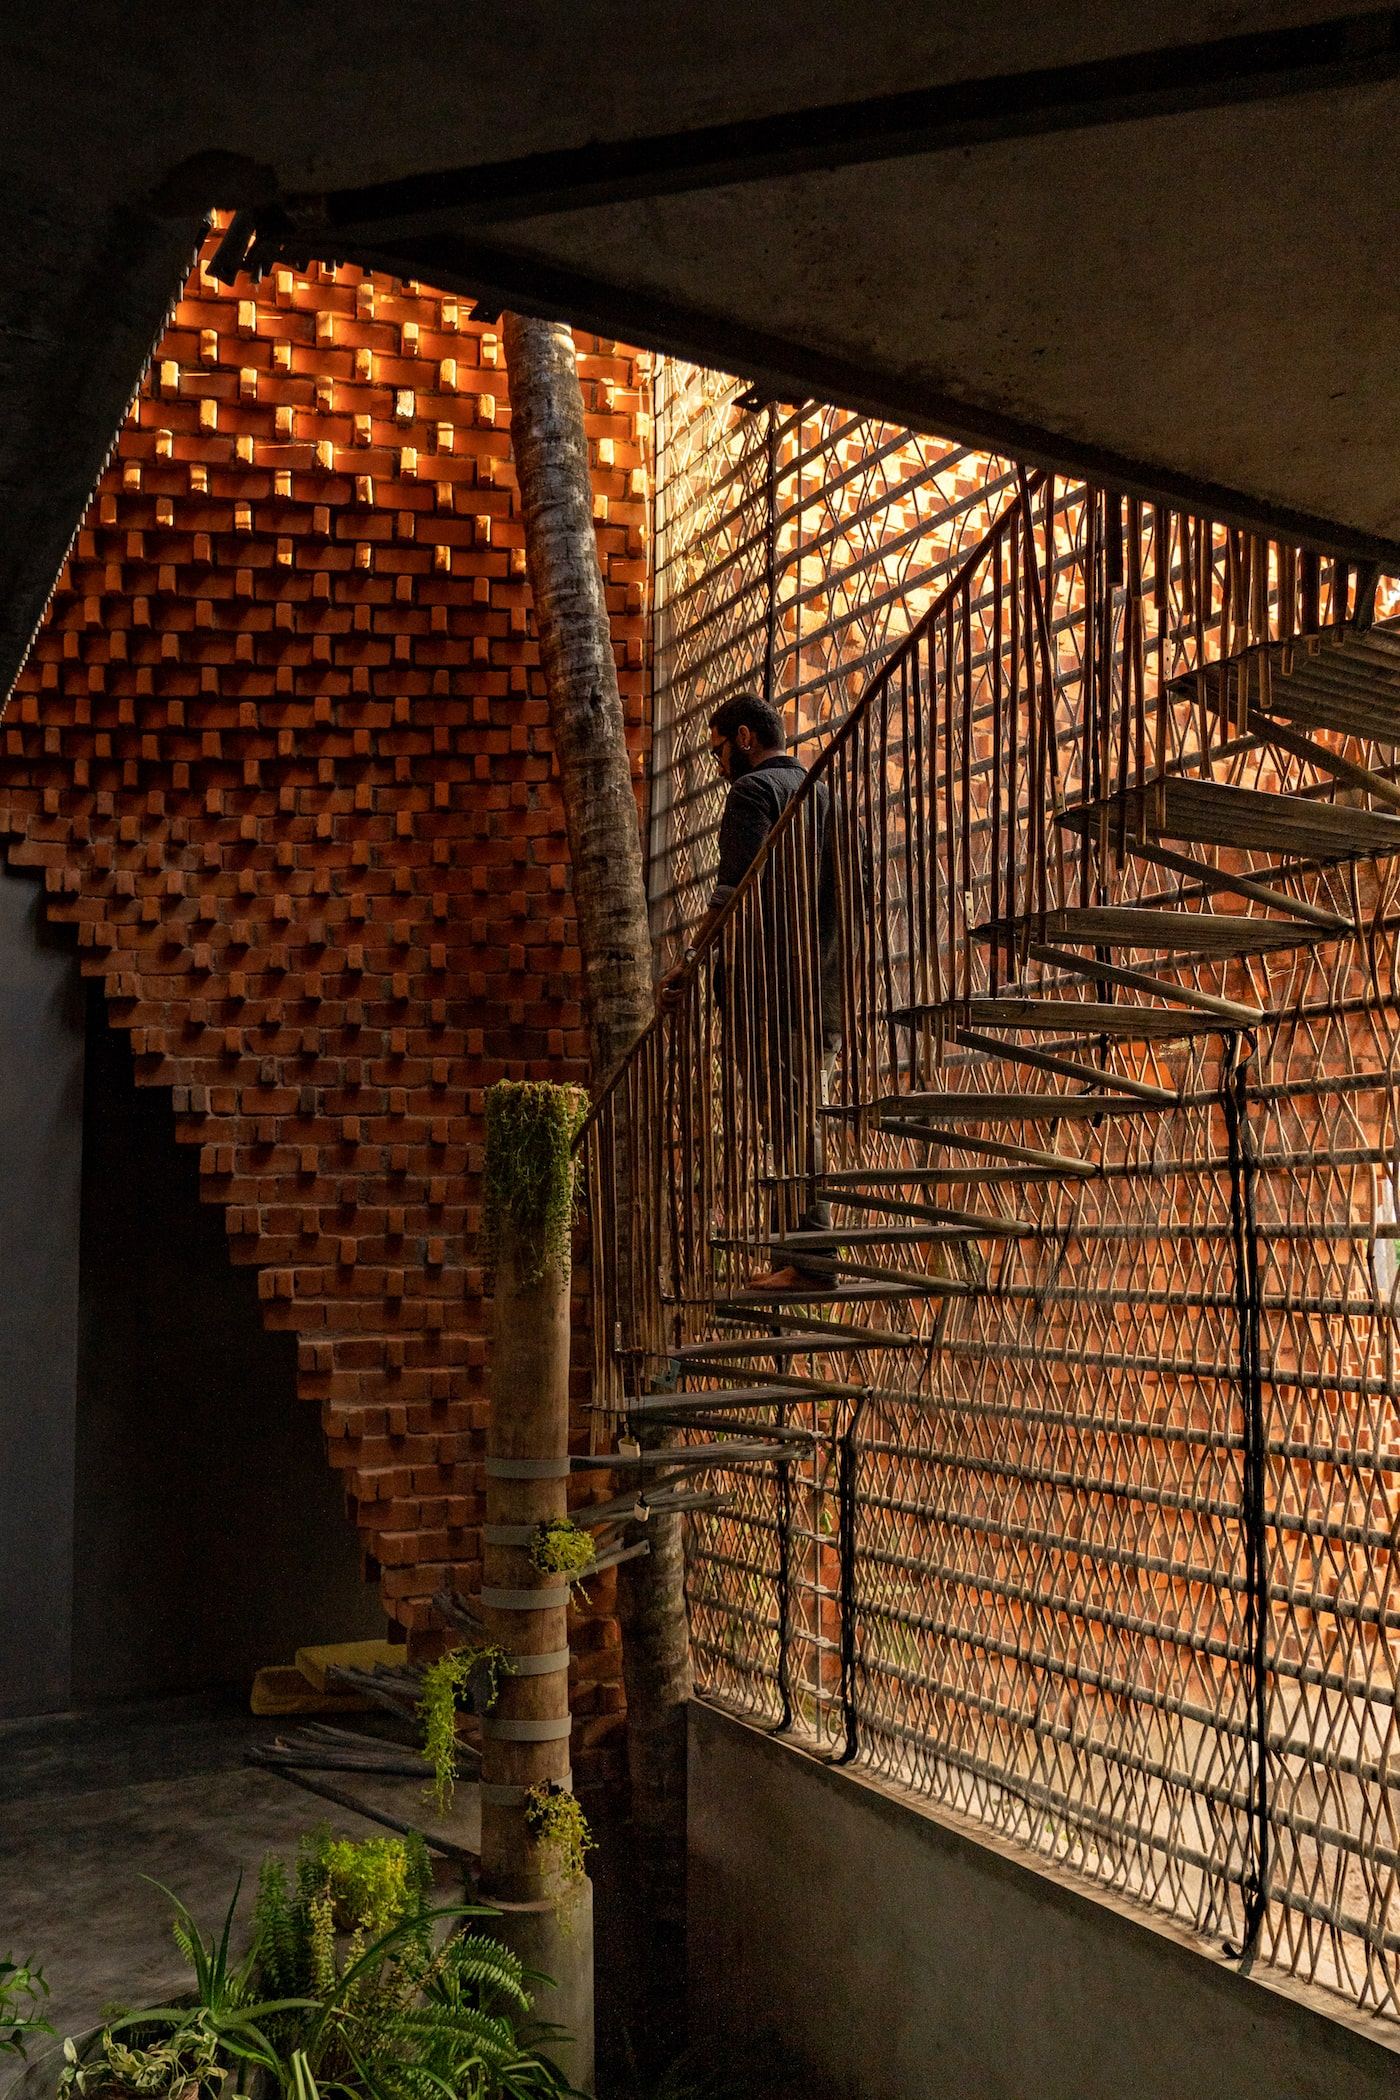 Man walking down metal staircase next to bamboo privacy screen